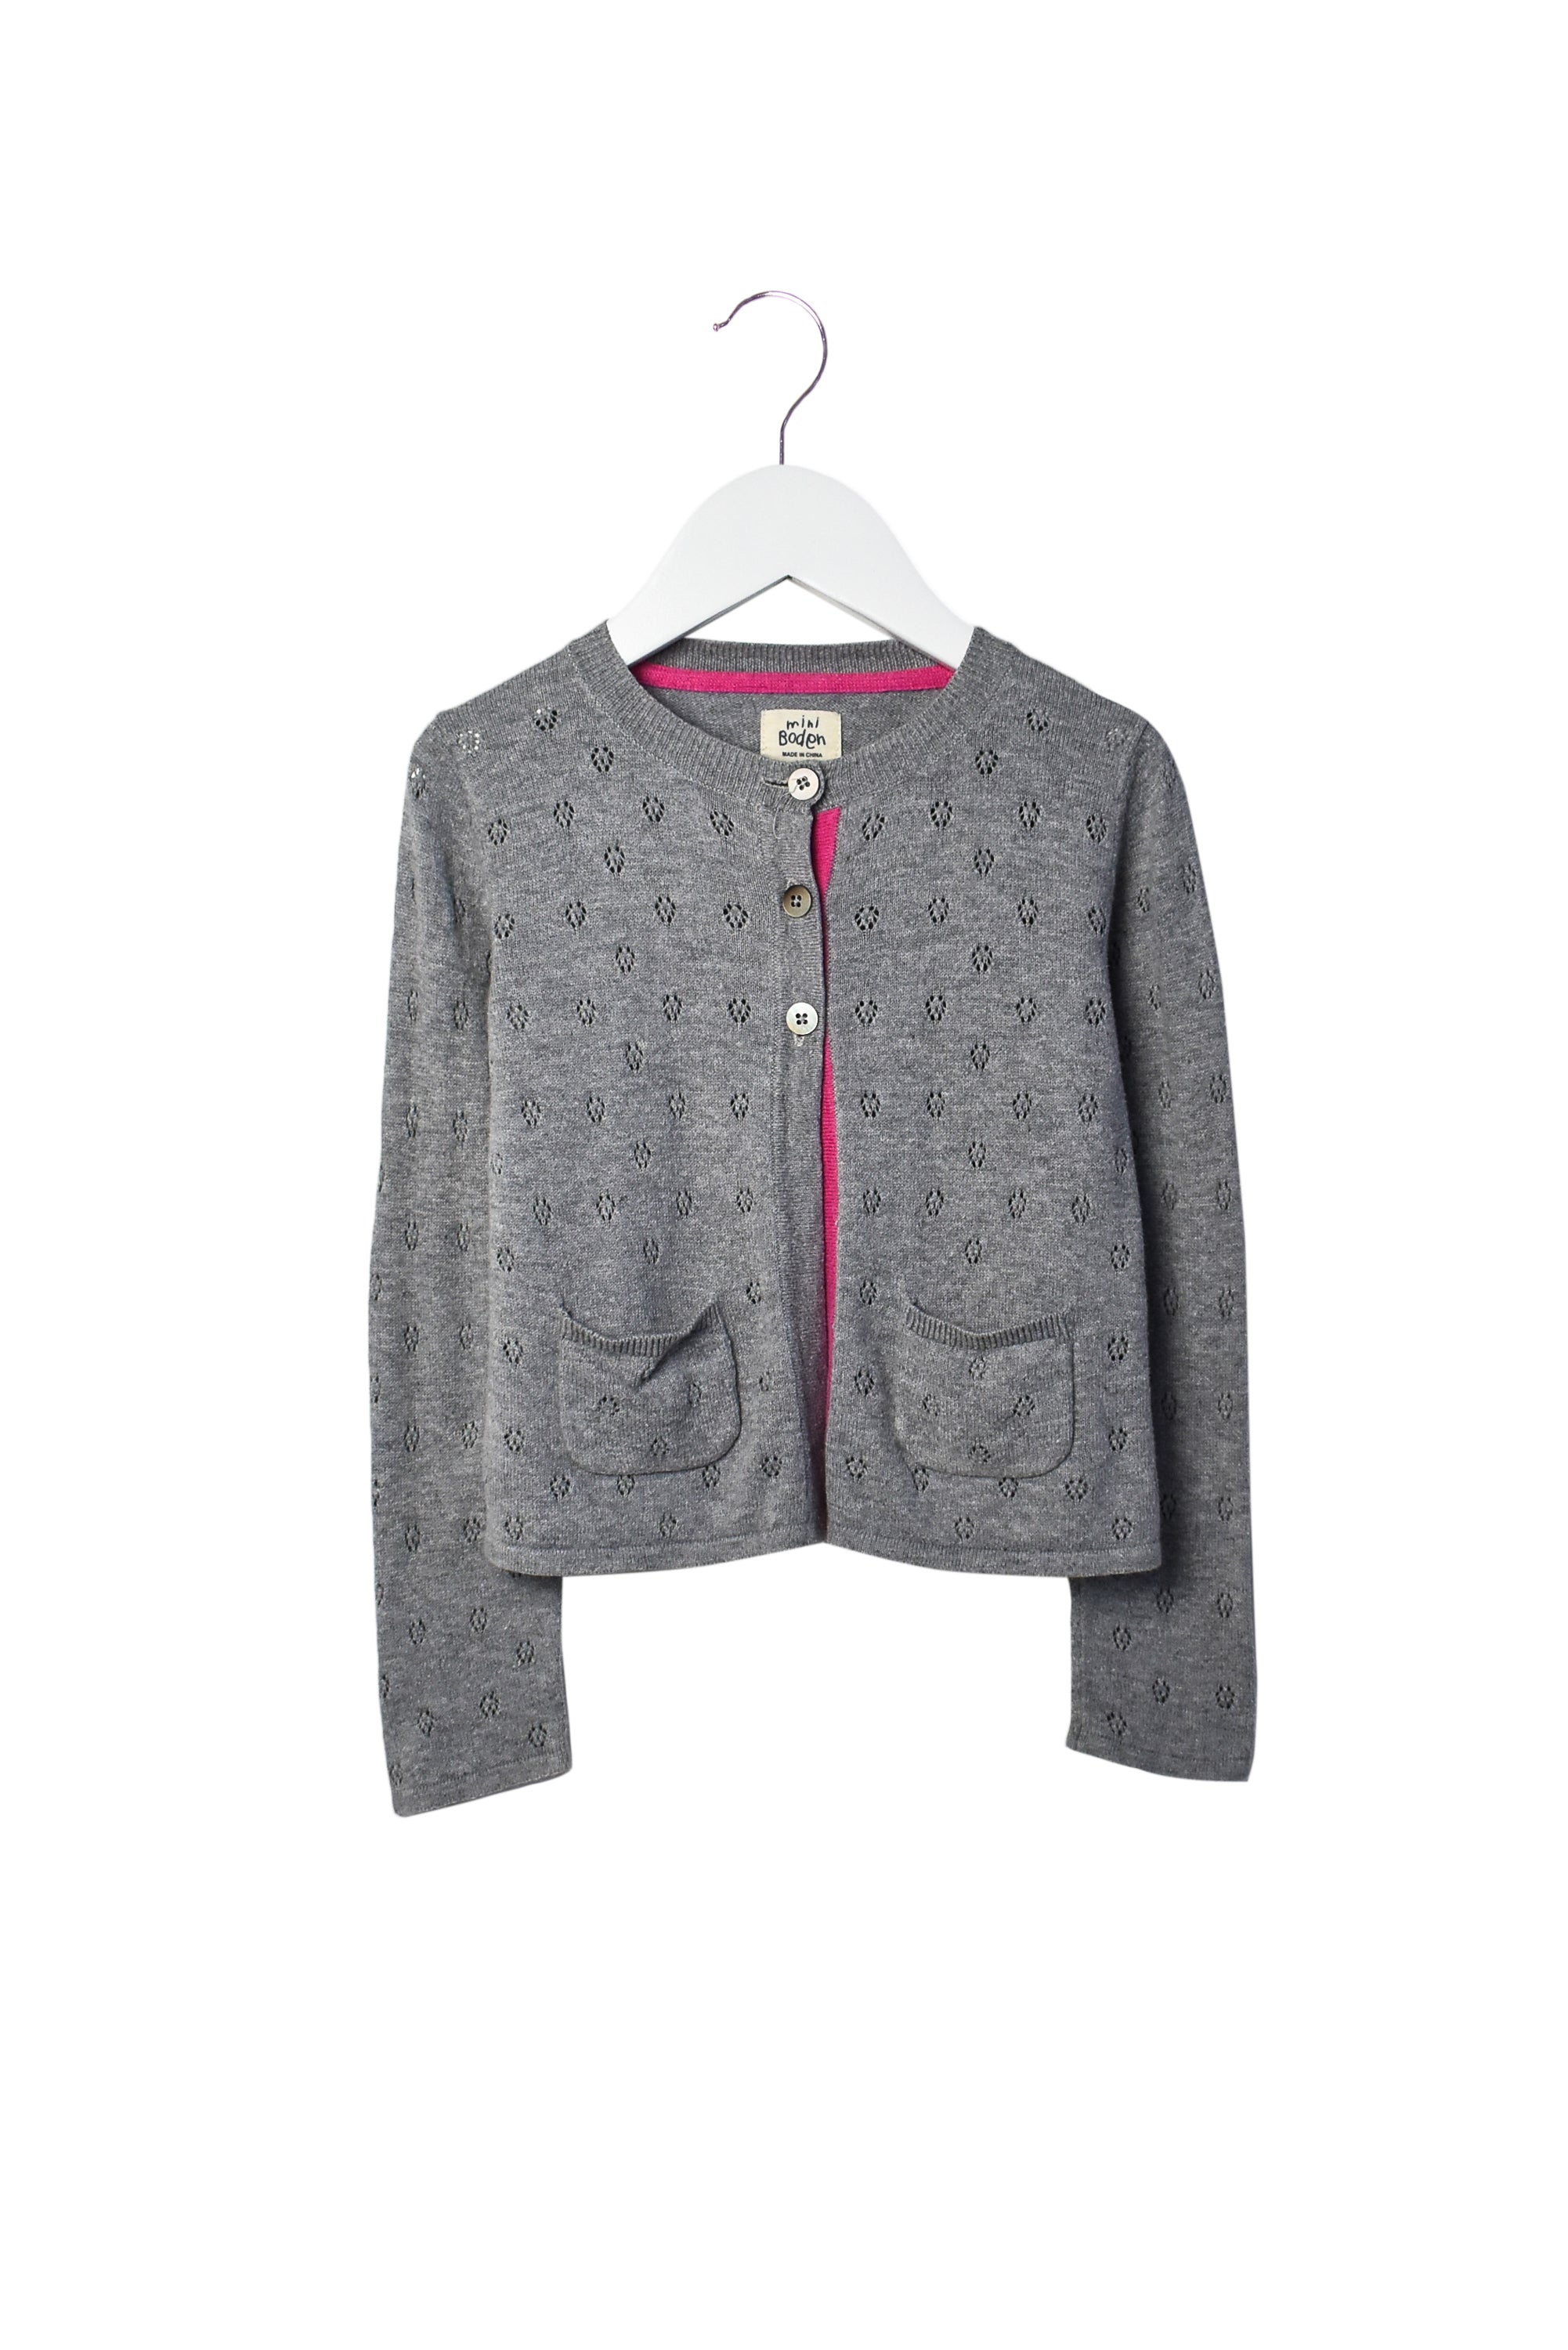 10006860 Boden Kids~Sweater 2-3T at Retykle